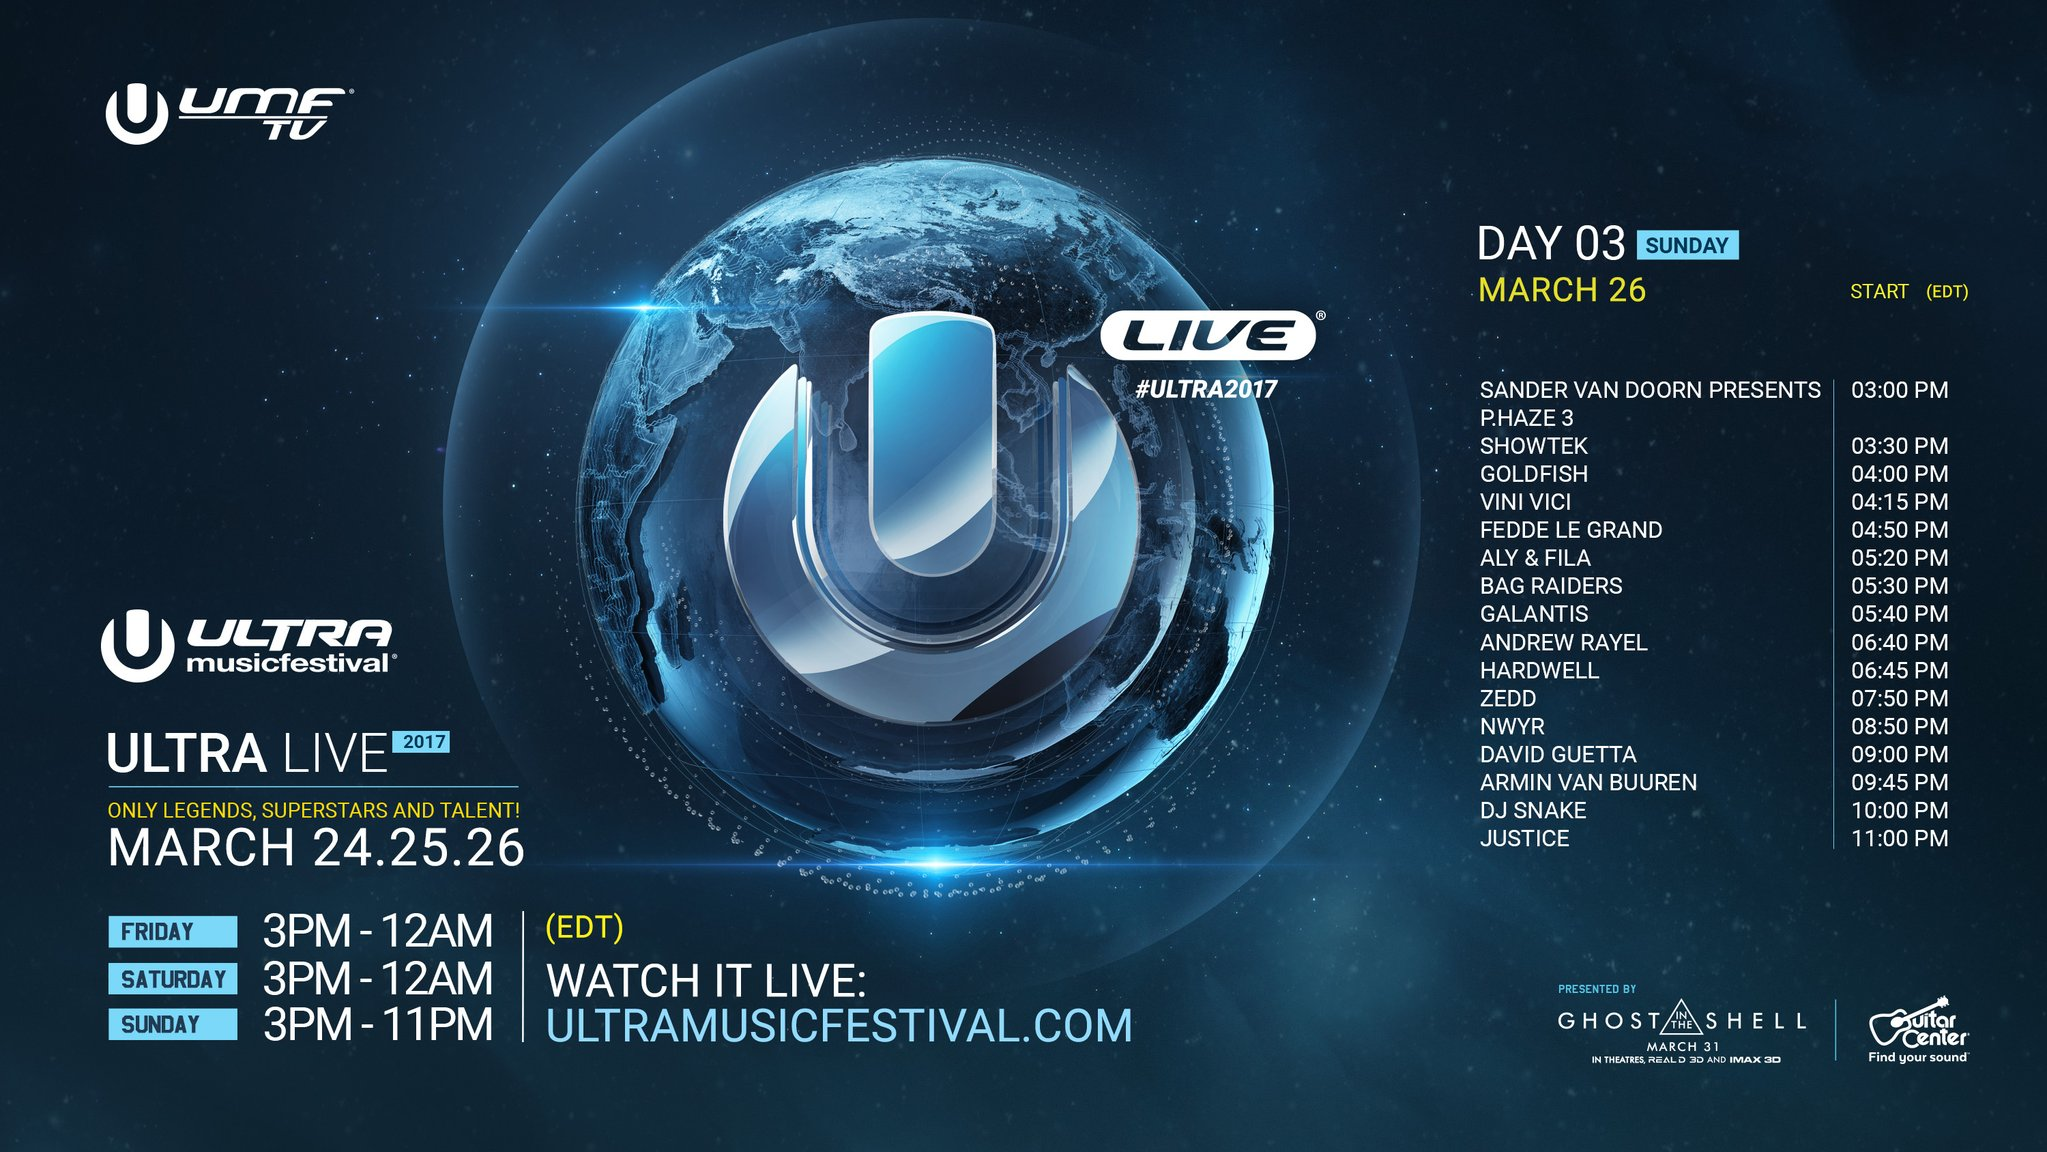 Hardwell, Zedd, David Guetta, DJ Snake, Justice etc - Live at Ultra Music Festival Miami Day3, 1080p Stream - 26-Mar-2017